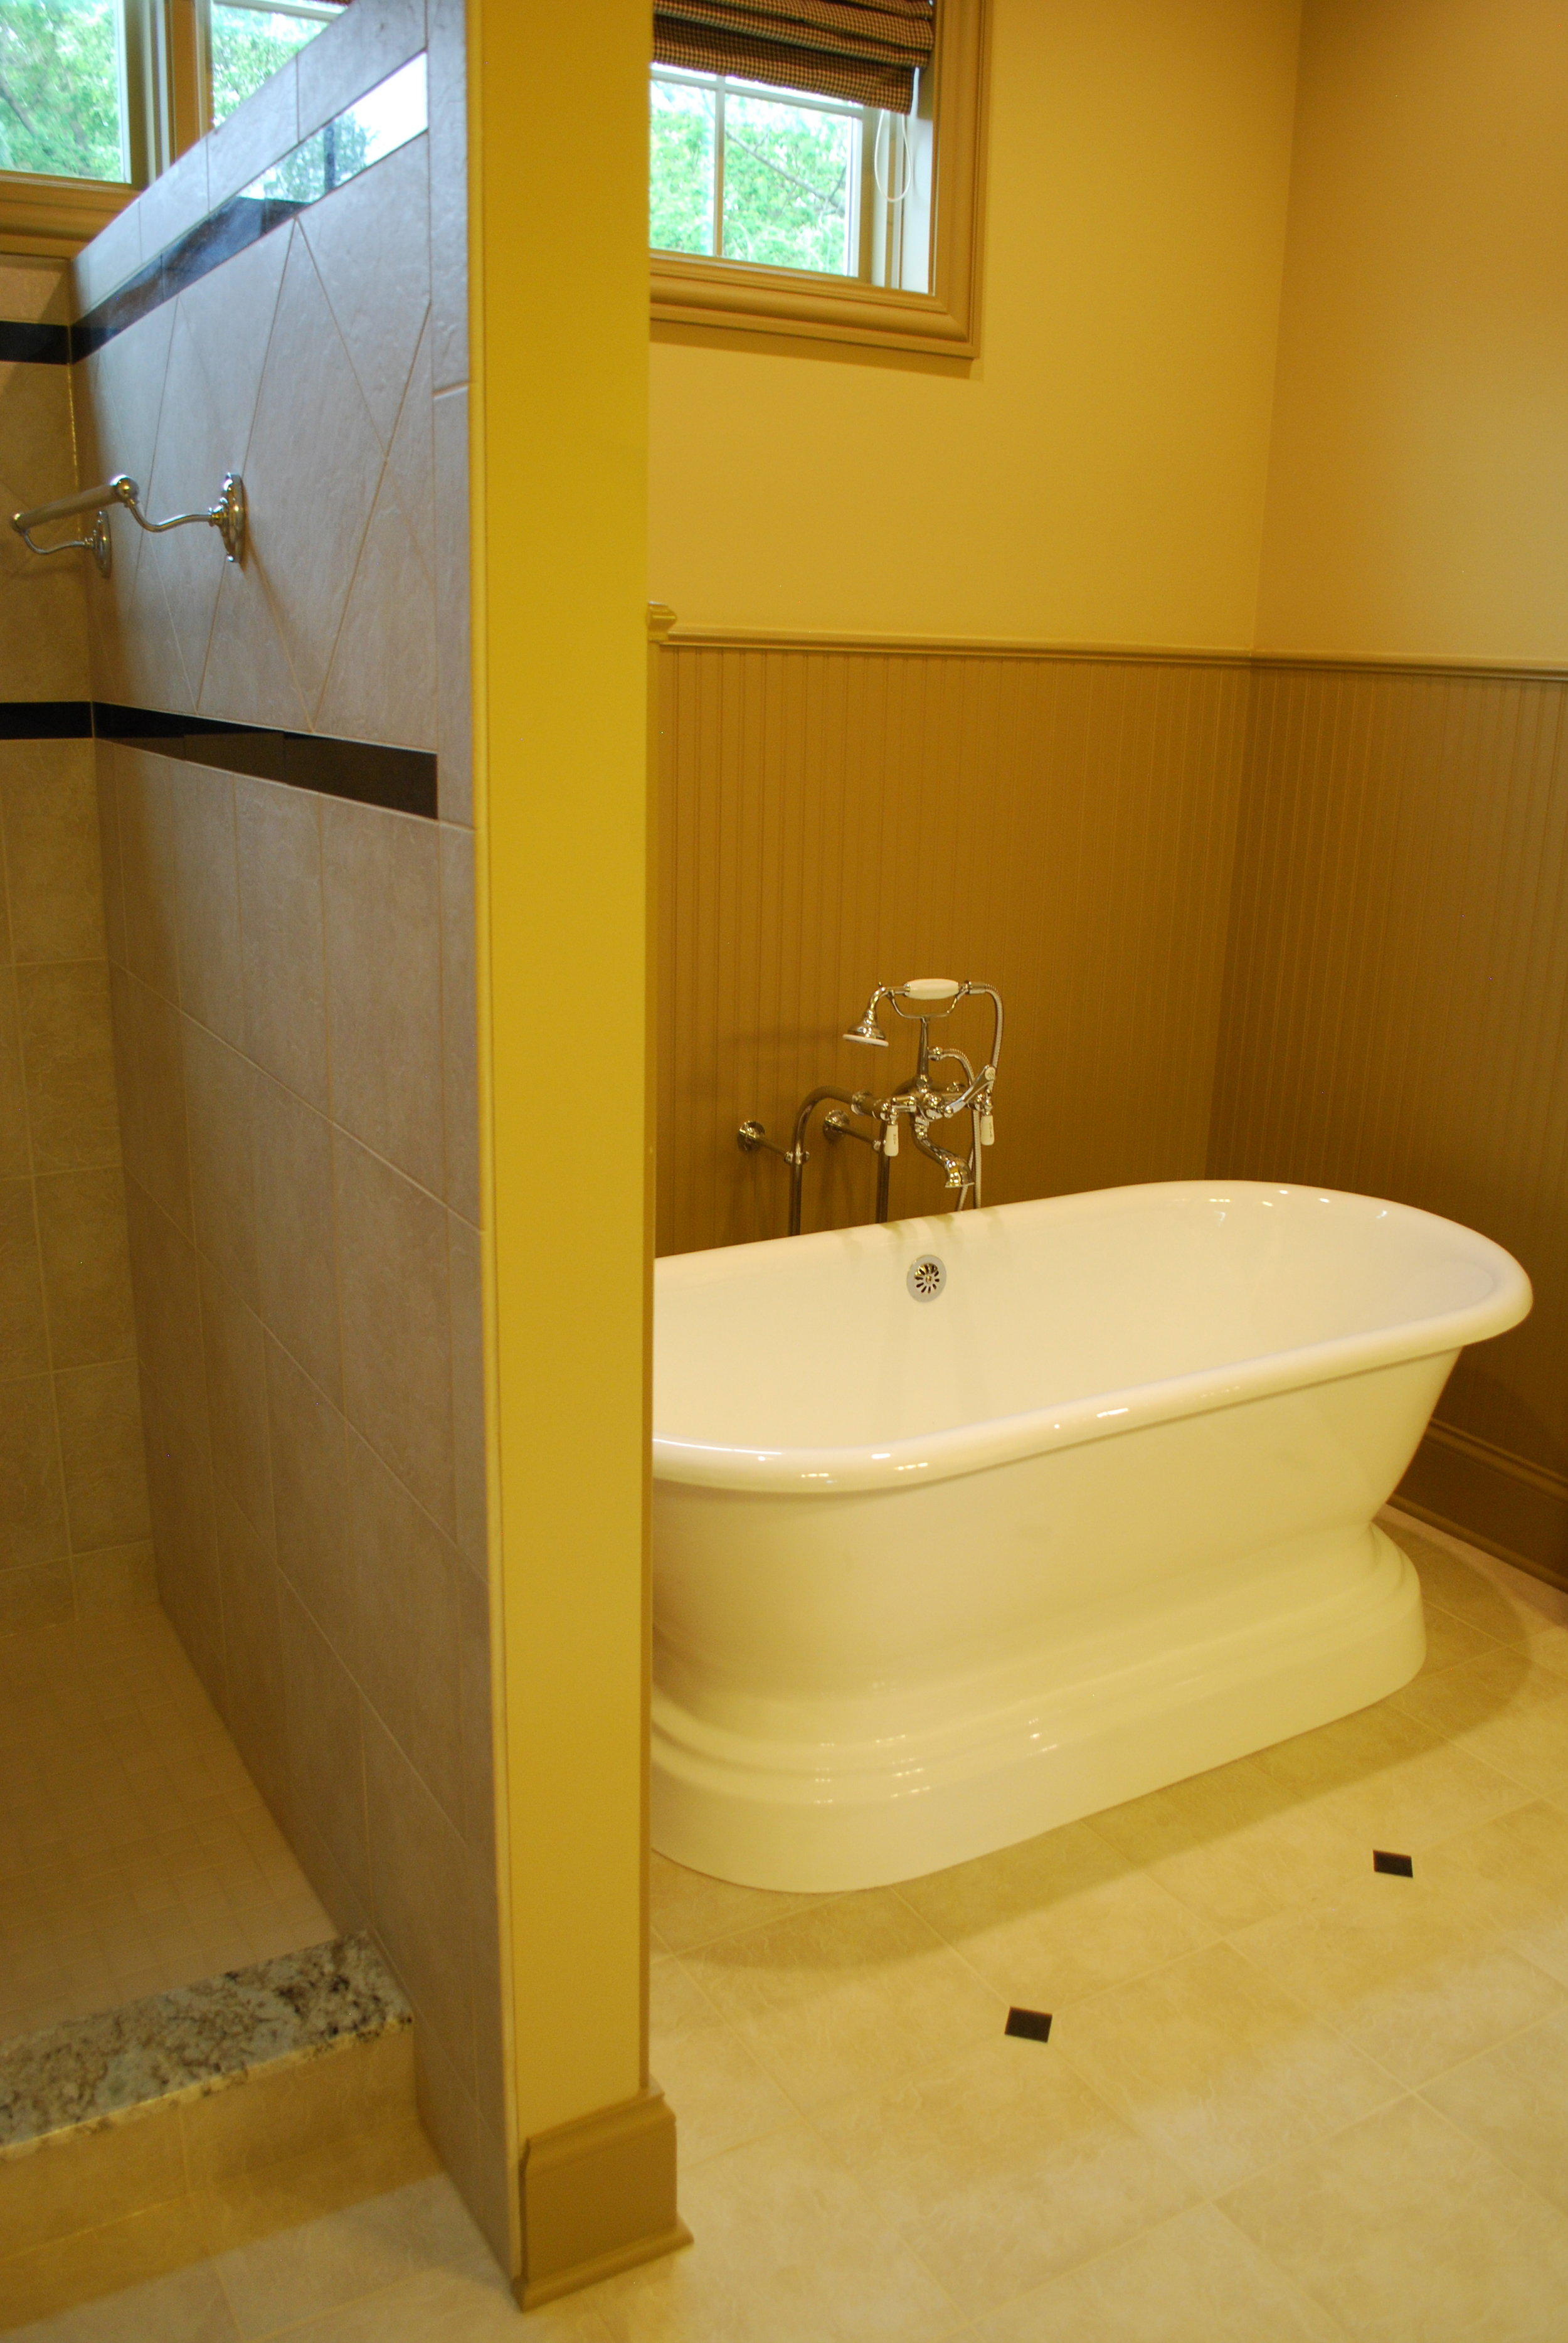 FREESTANDING TUB WITH WAINSCOTING IN GENEVA IL REMODEL